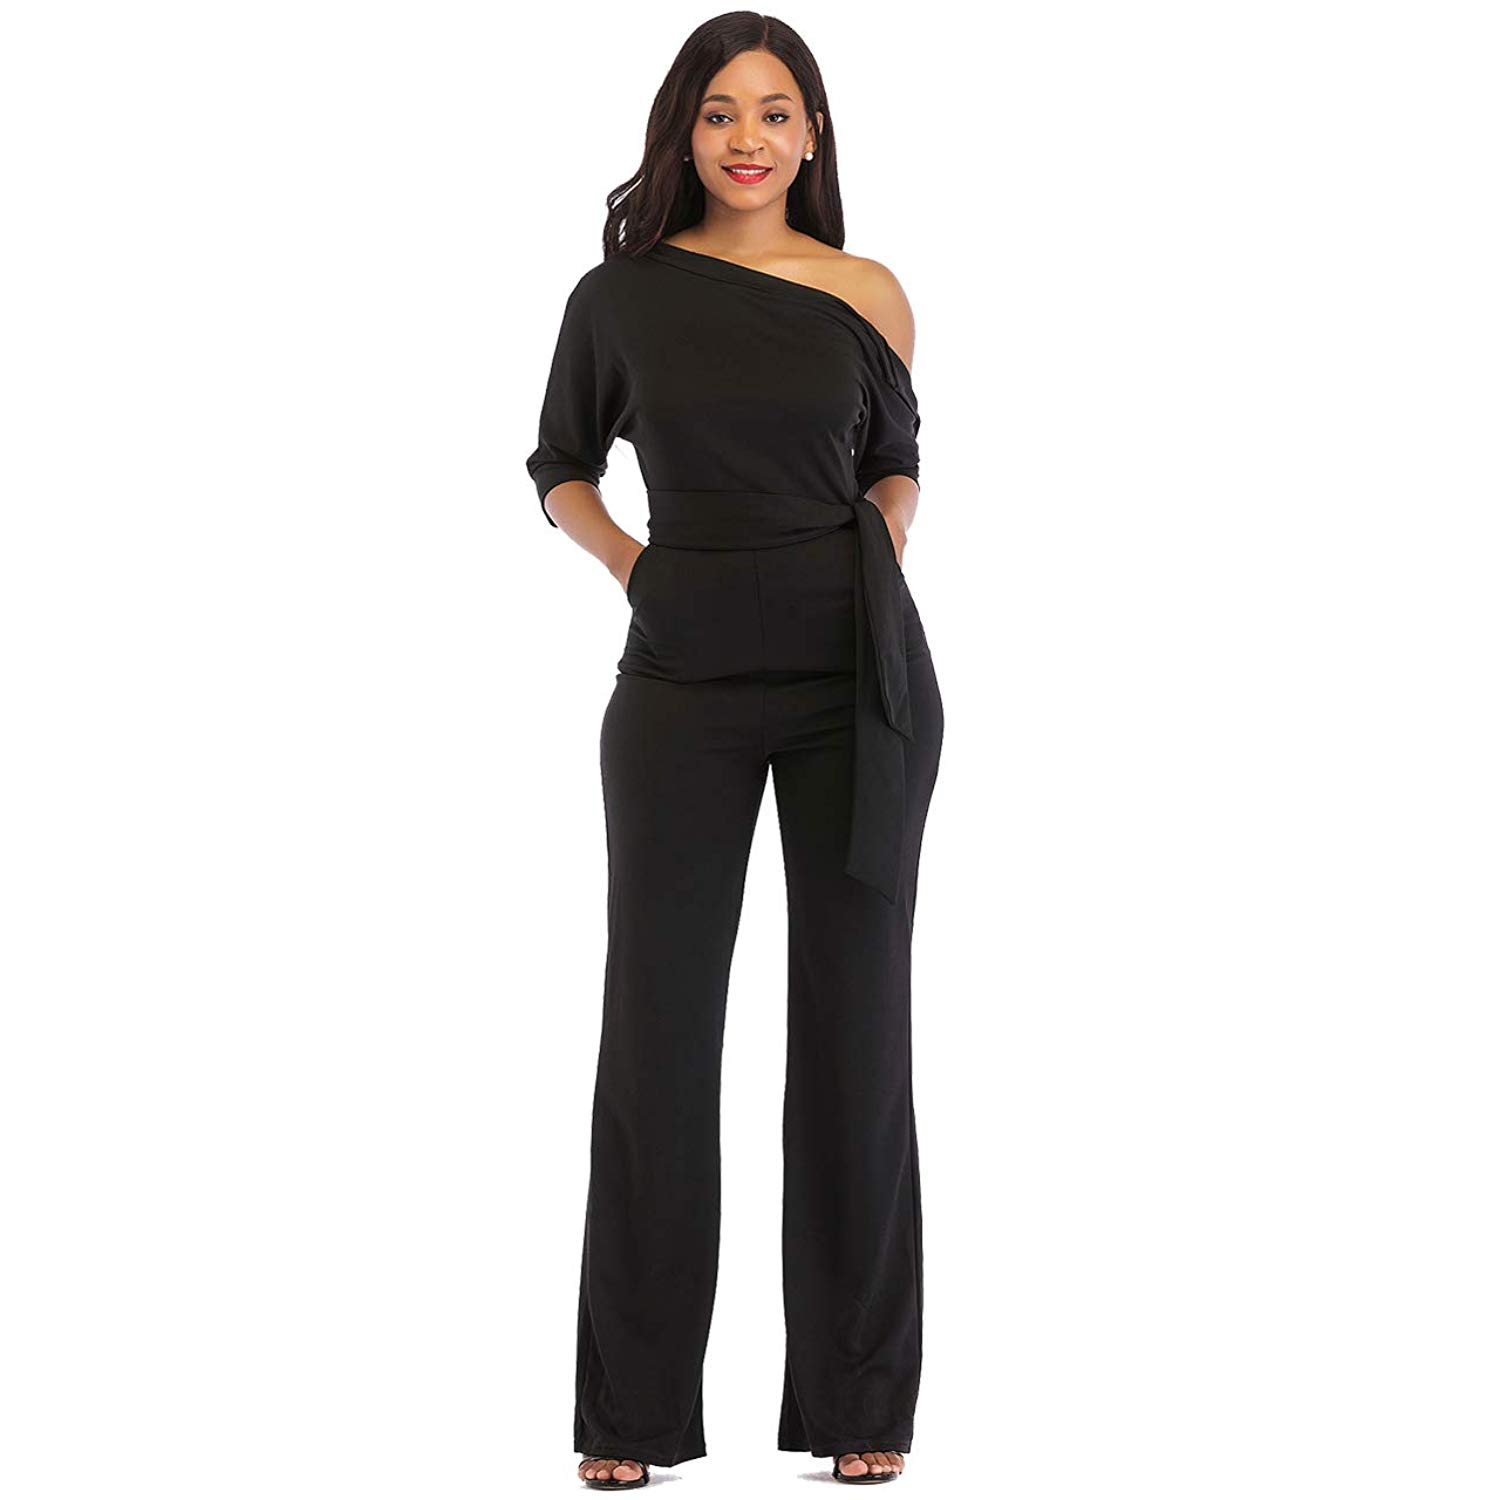 Cheap Elegant Jumpsuits For Evening Wear Find Elegant Jumpsuits For